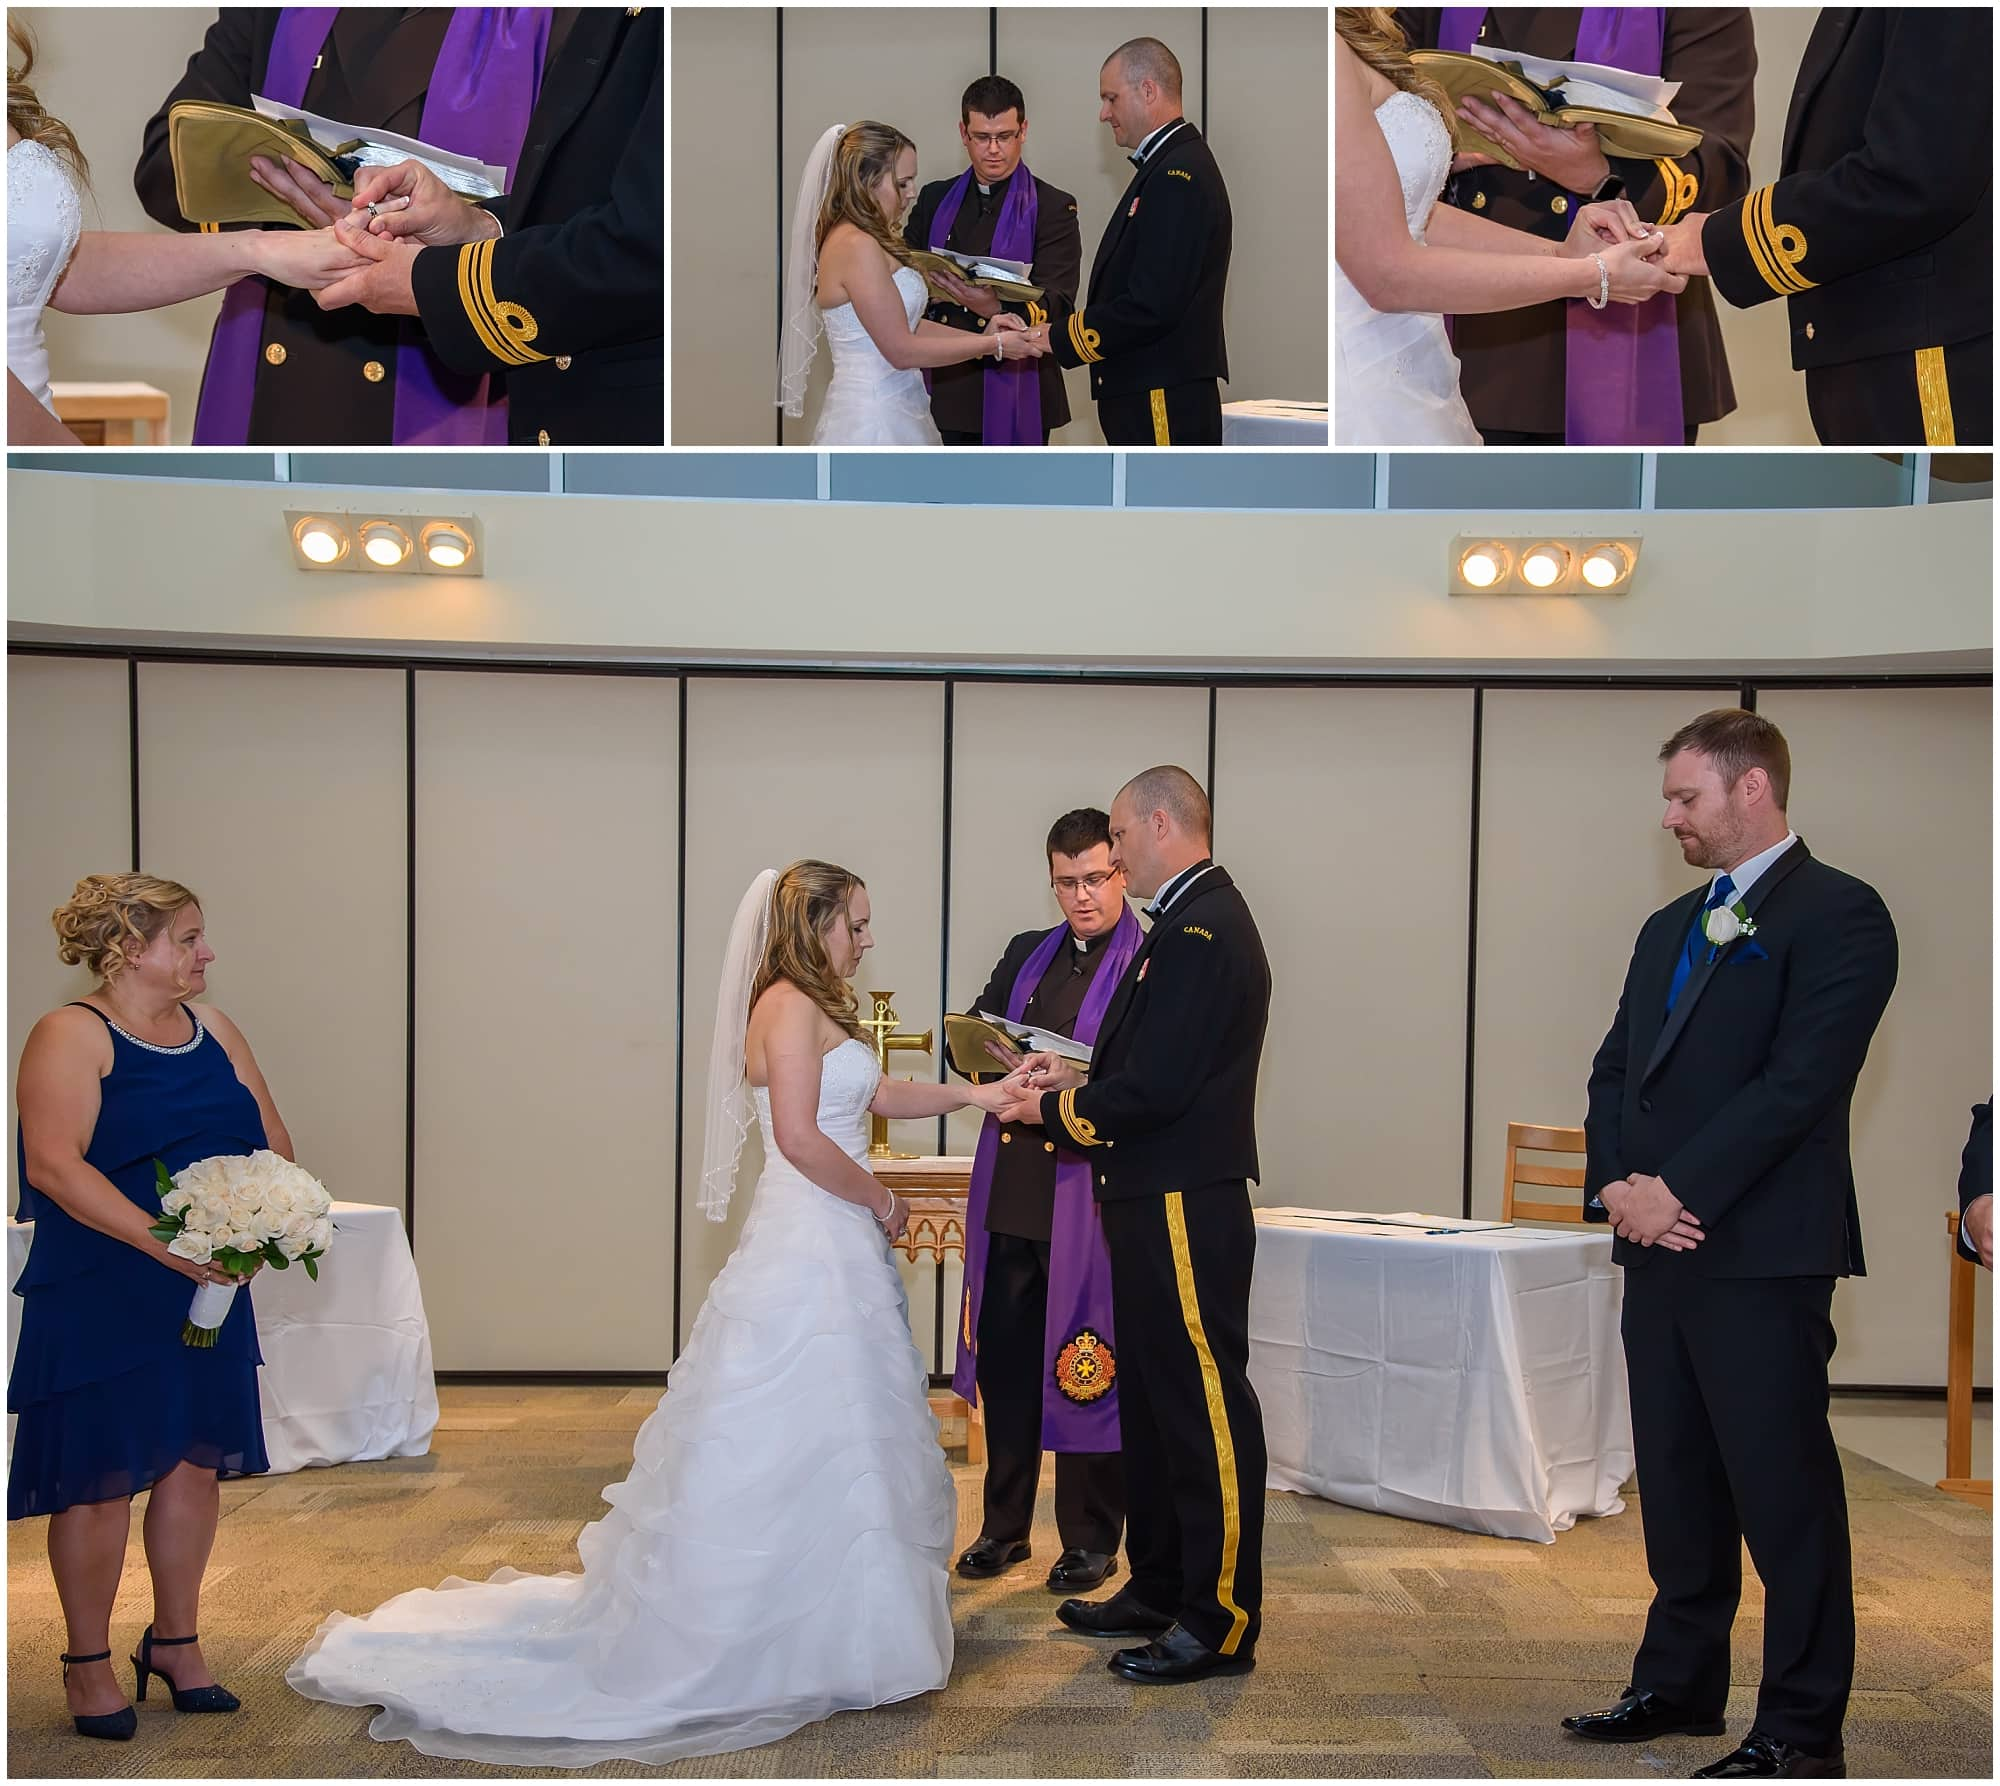 The bride and groom exchange their wedding rings during their Juno Tower wedding in Halifax, NS.